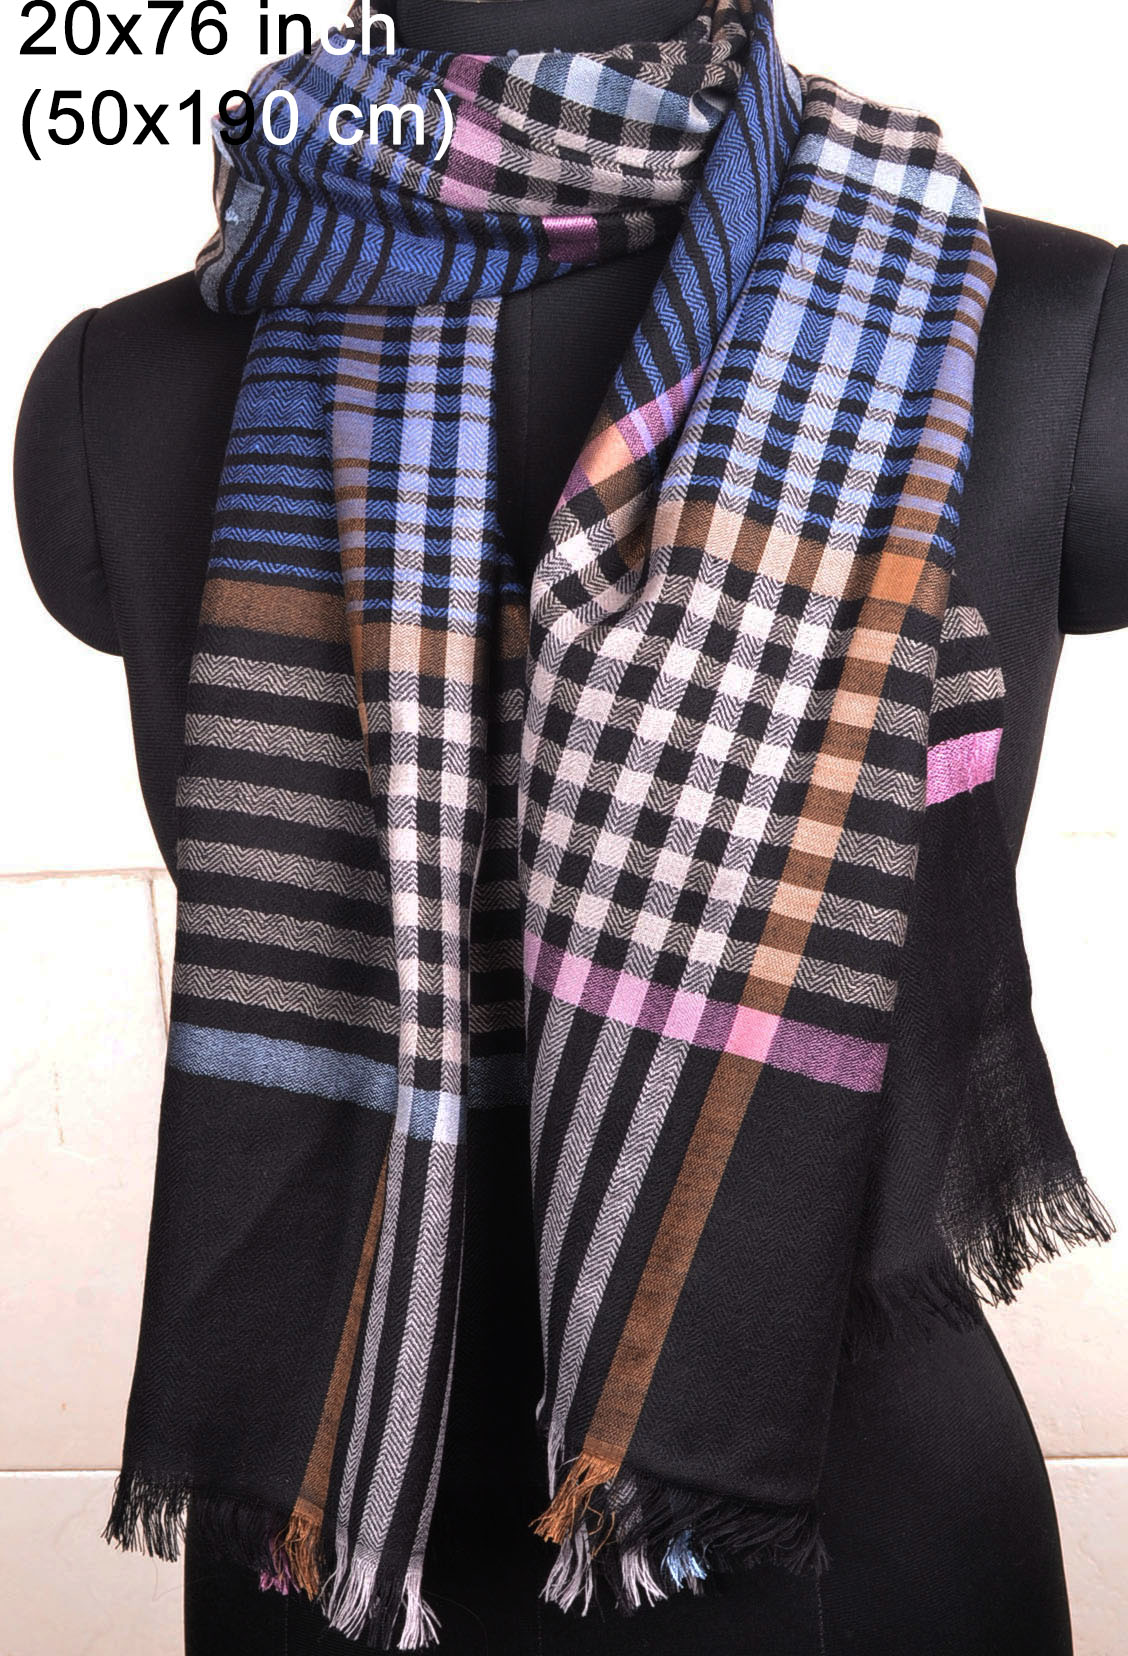 plaid check pashmina 100 cashmere shawl scarf wrap